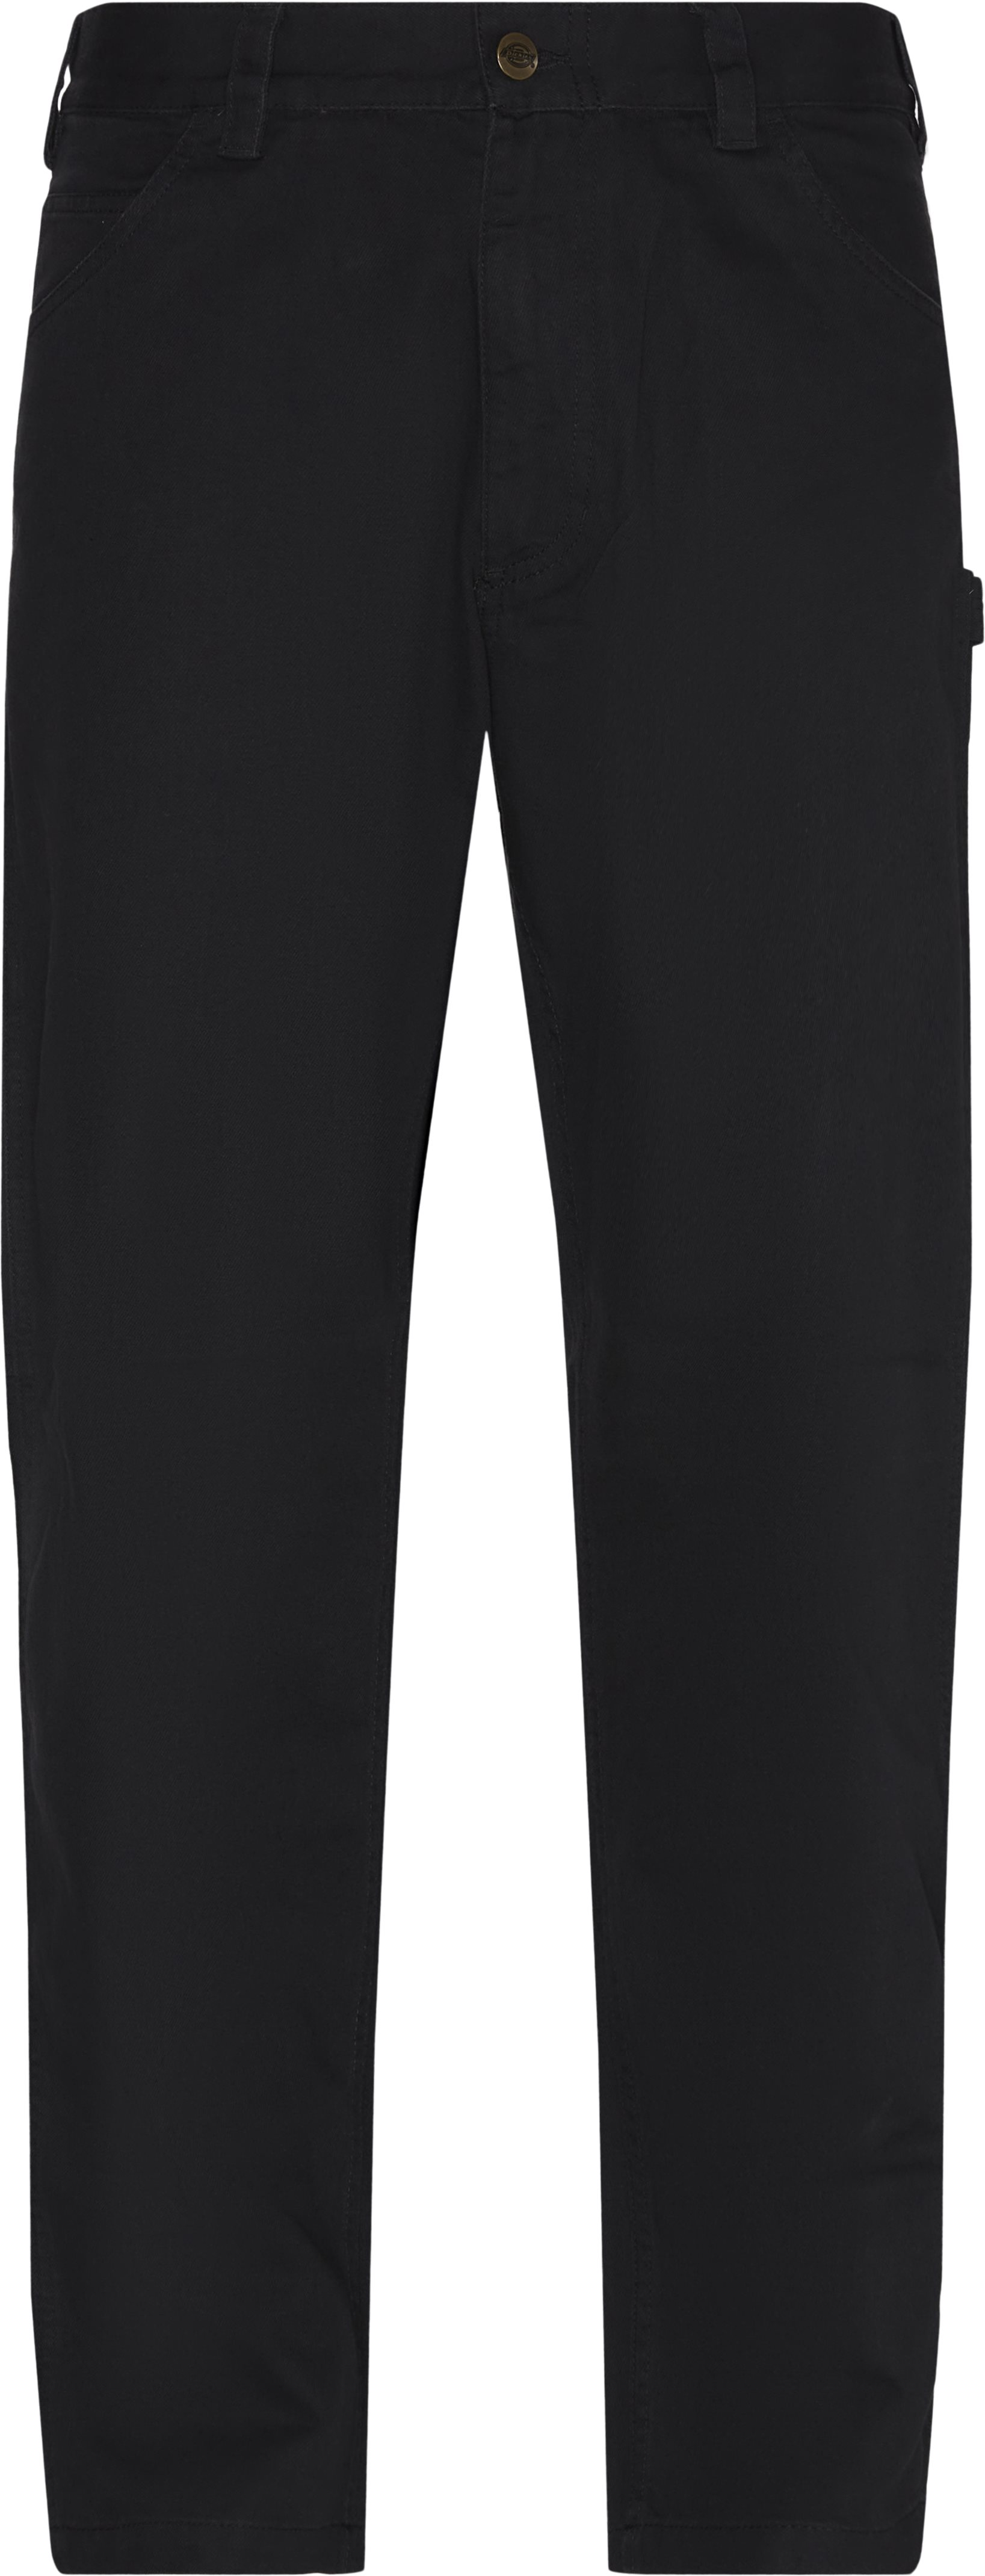 Fairdale Pant - Byxor - Straight fit - Svart